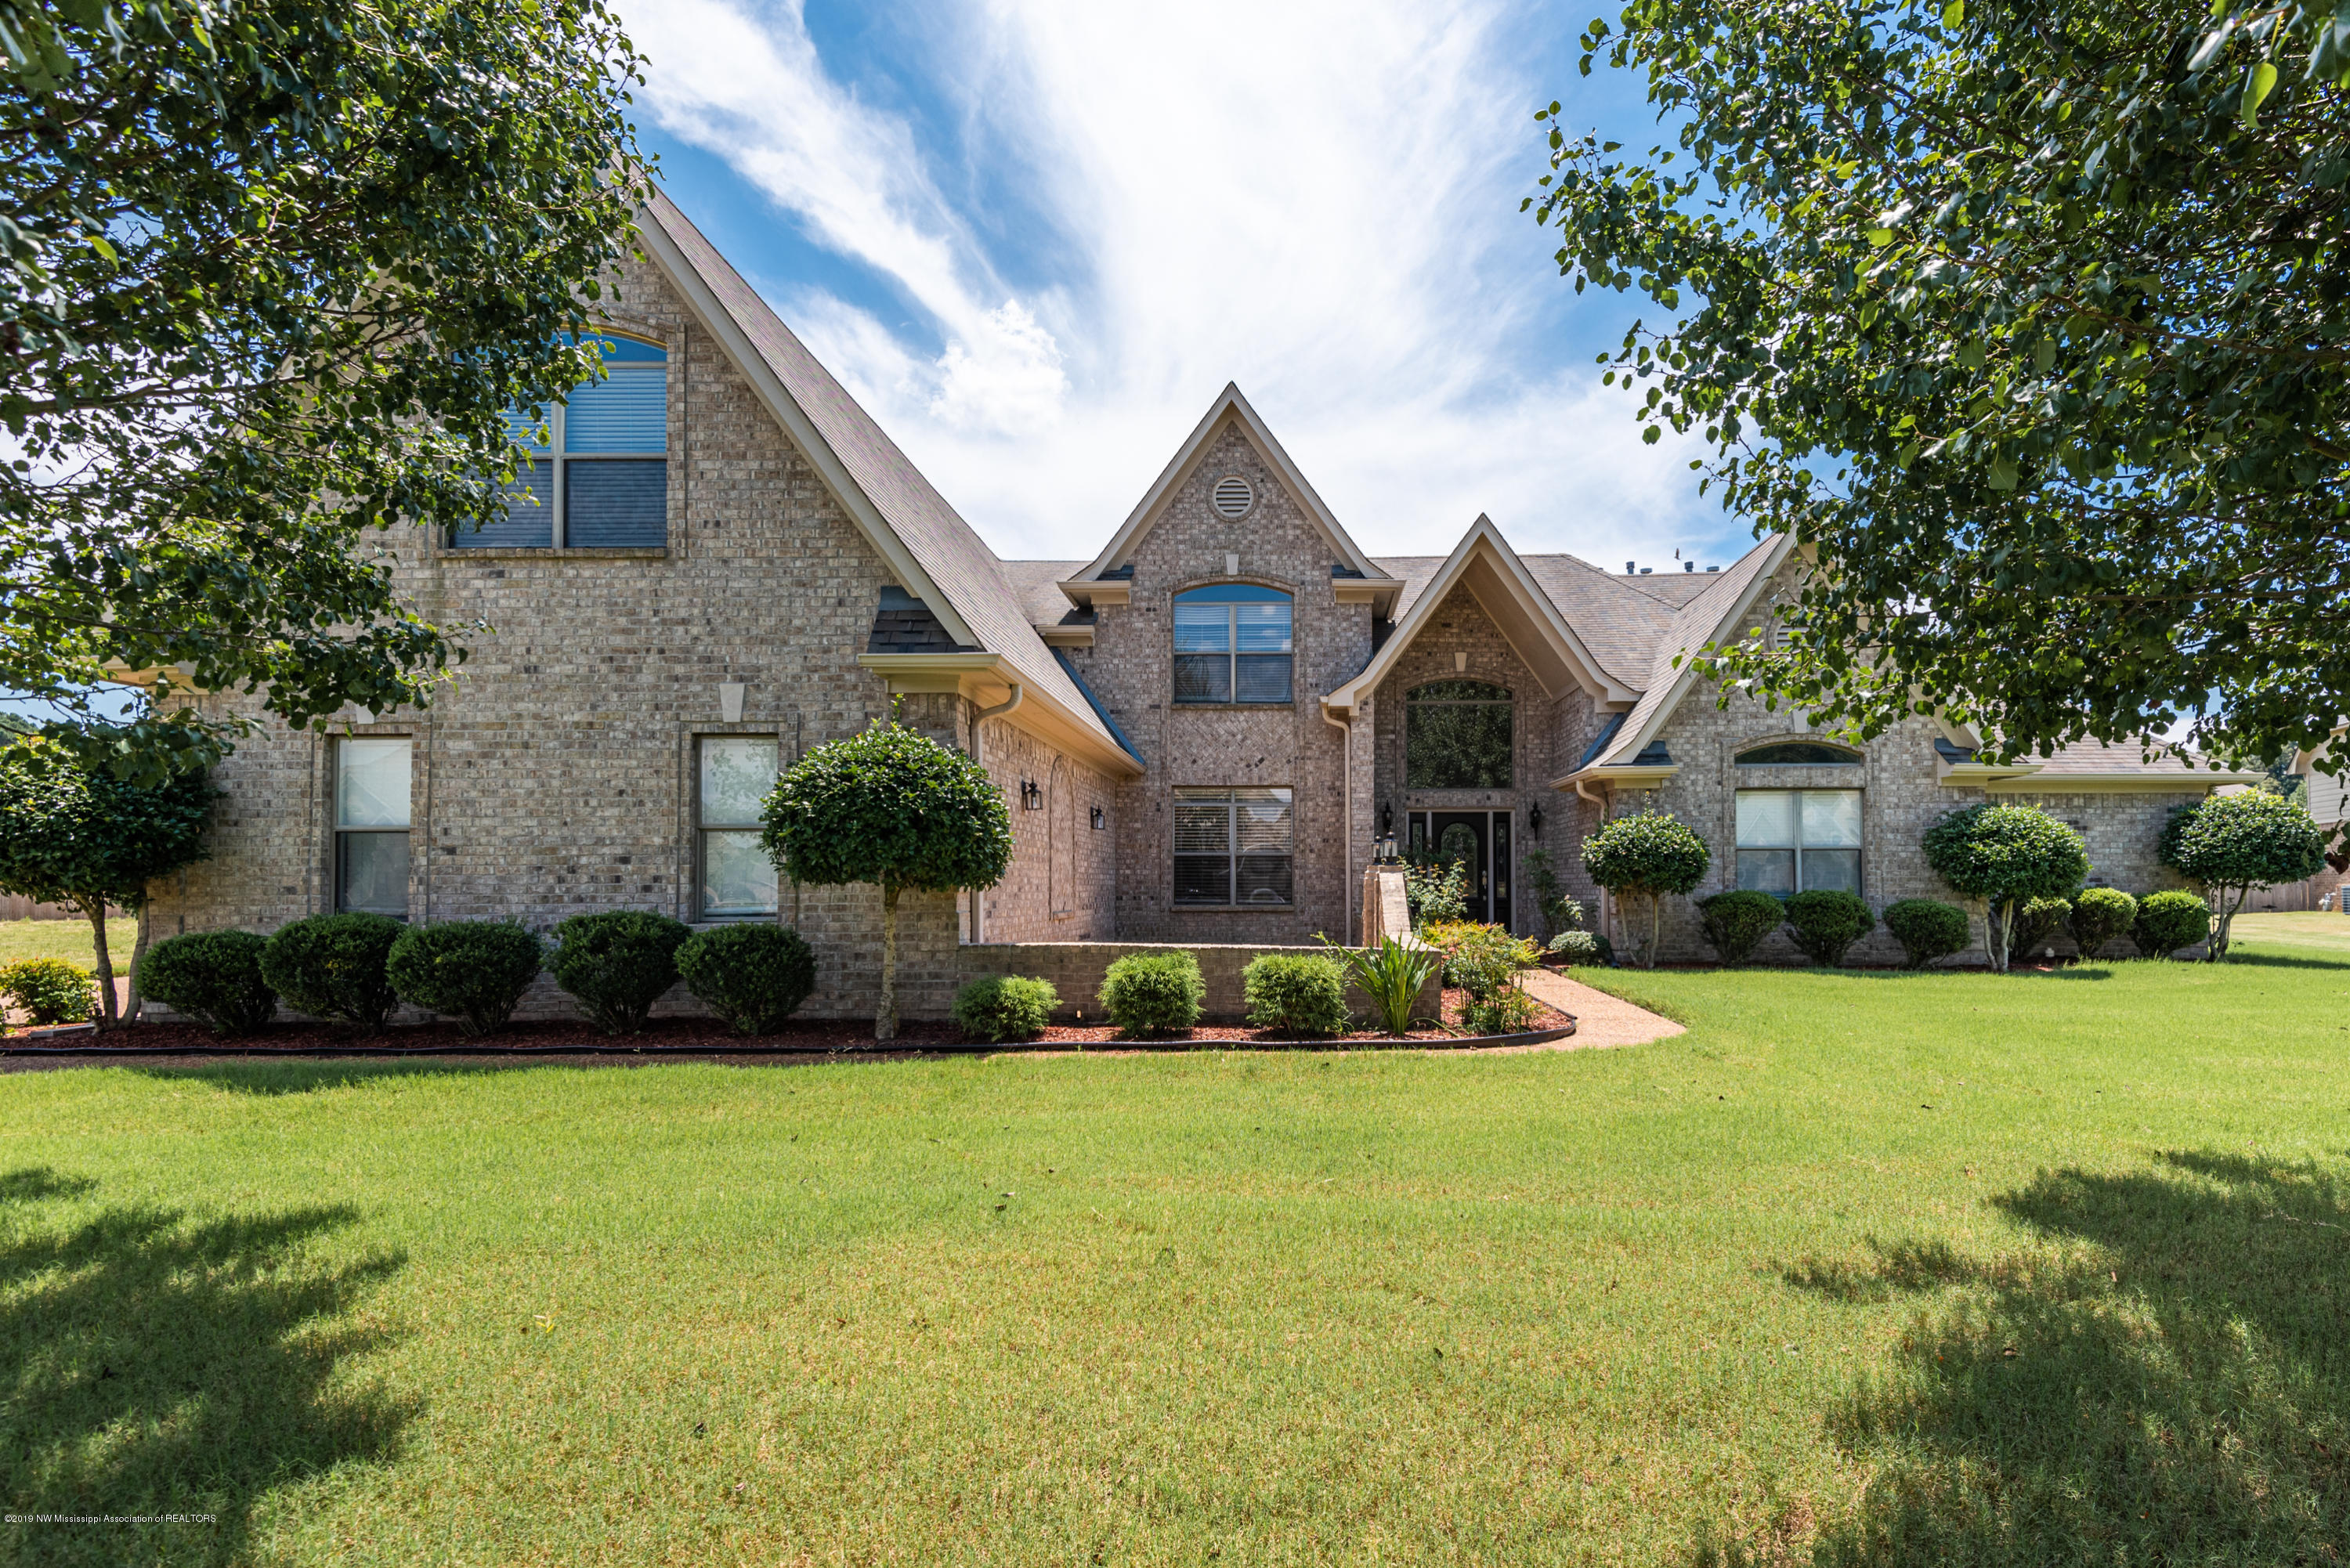 4309 Abele Cove, Olive Branch in DeSoto County, MS 38654 Home for Sale